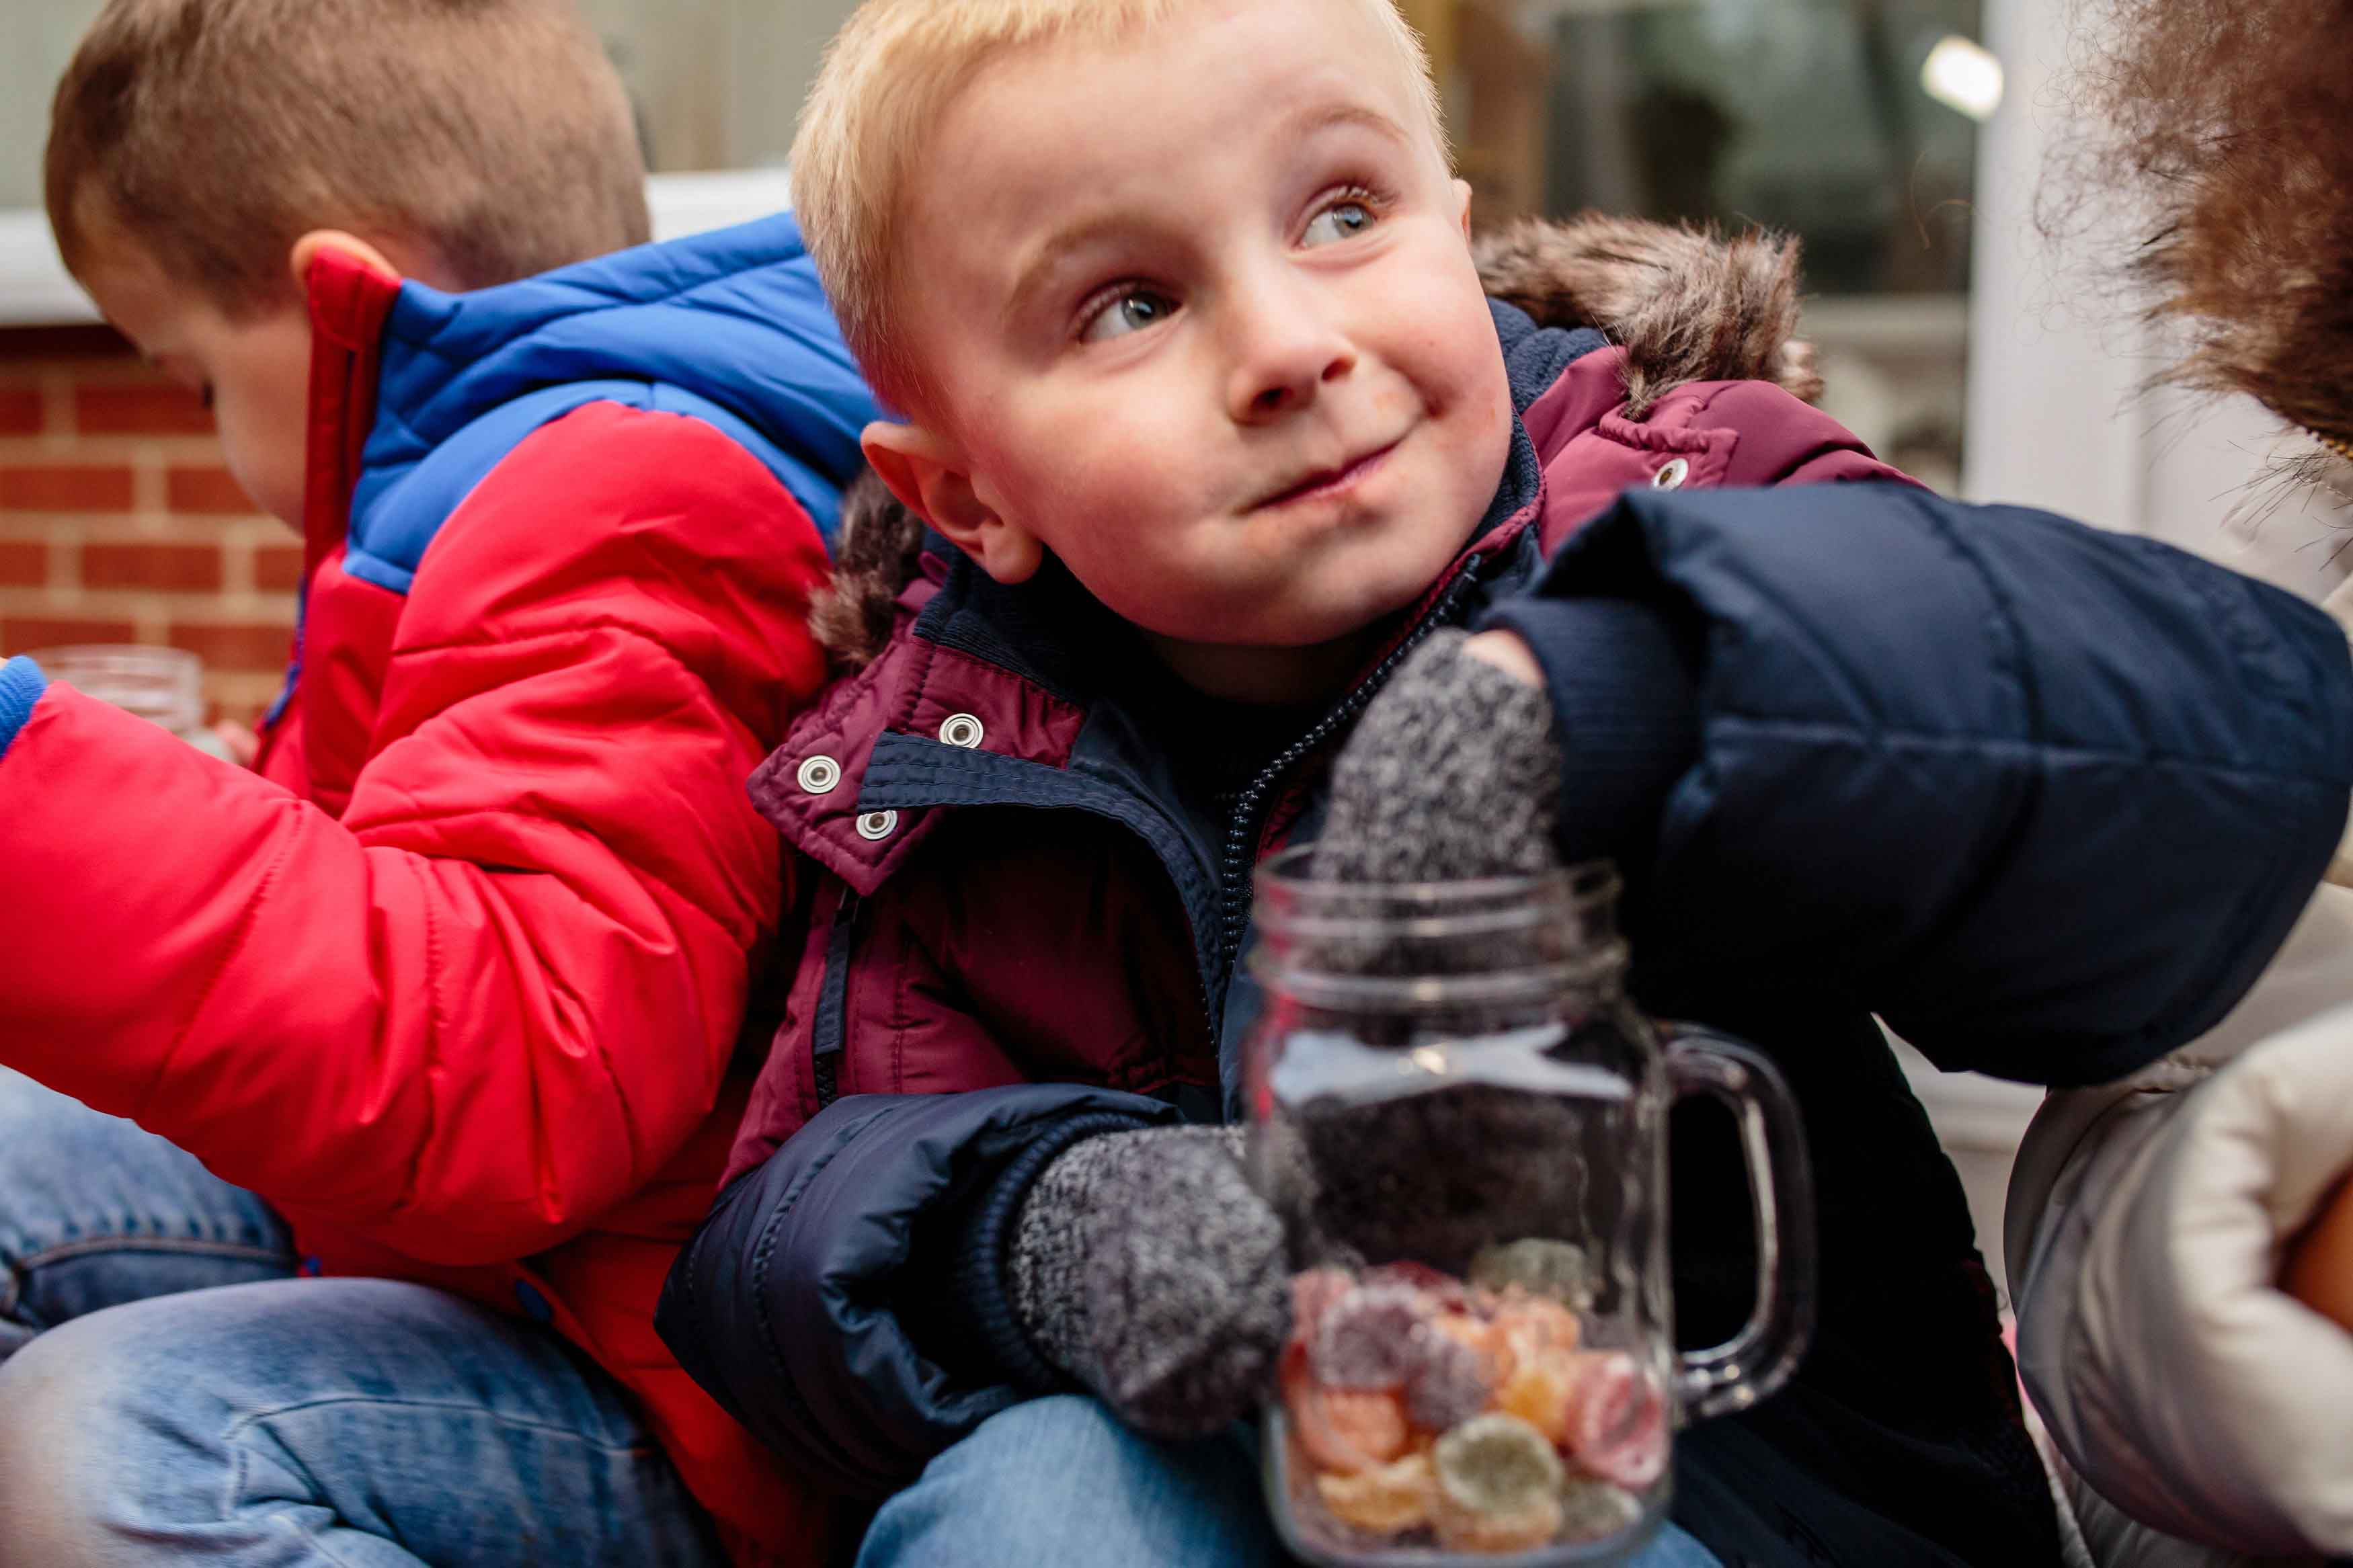 Boy eating sweets from jar